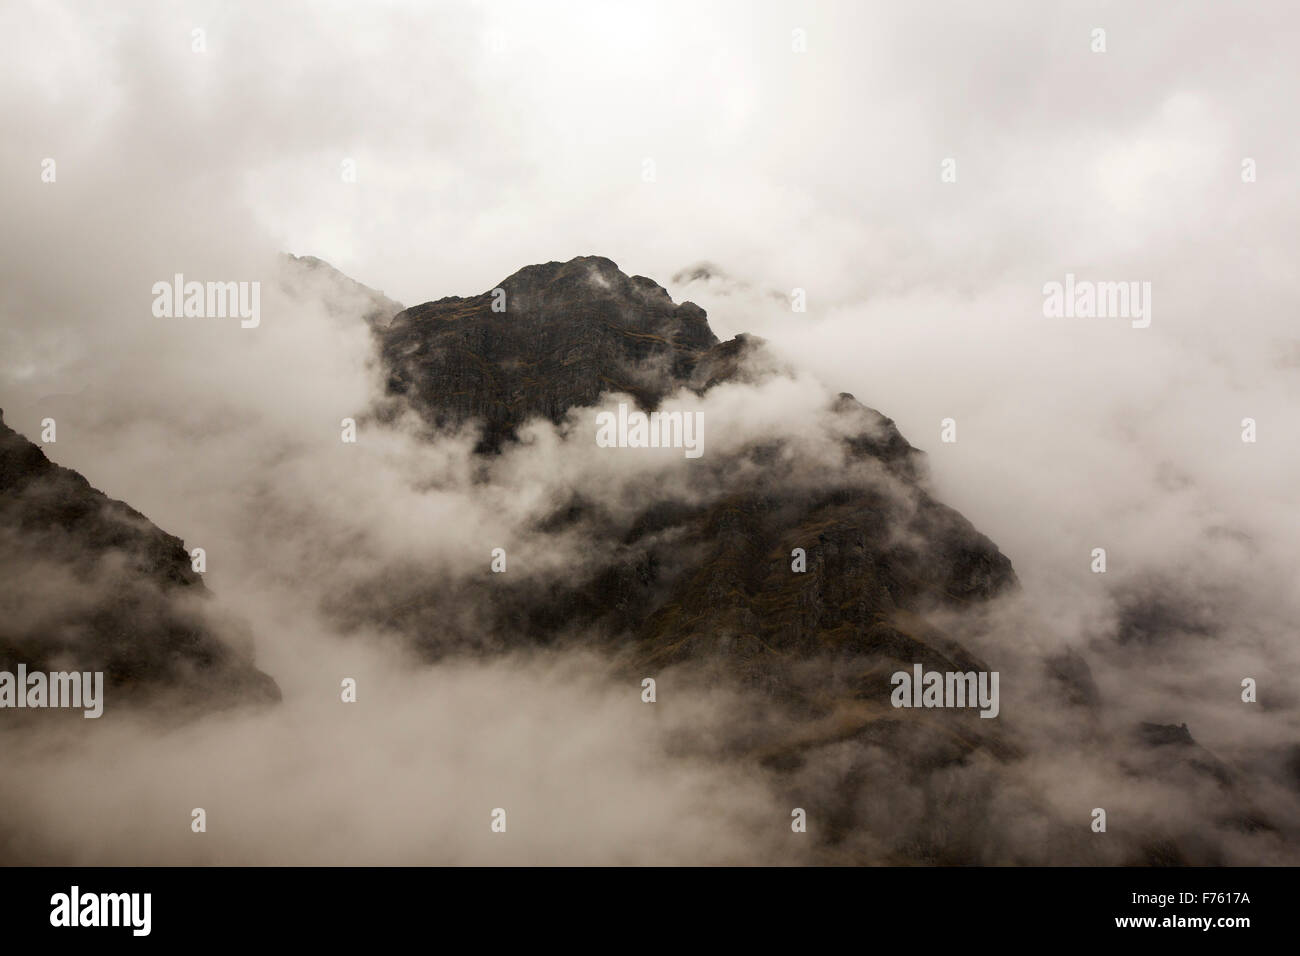 Mist shrowded mountains in the Cordillera Real in Bolivia. - Stock Image